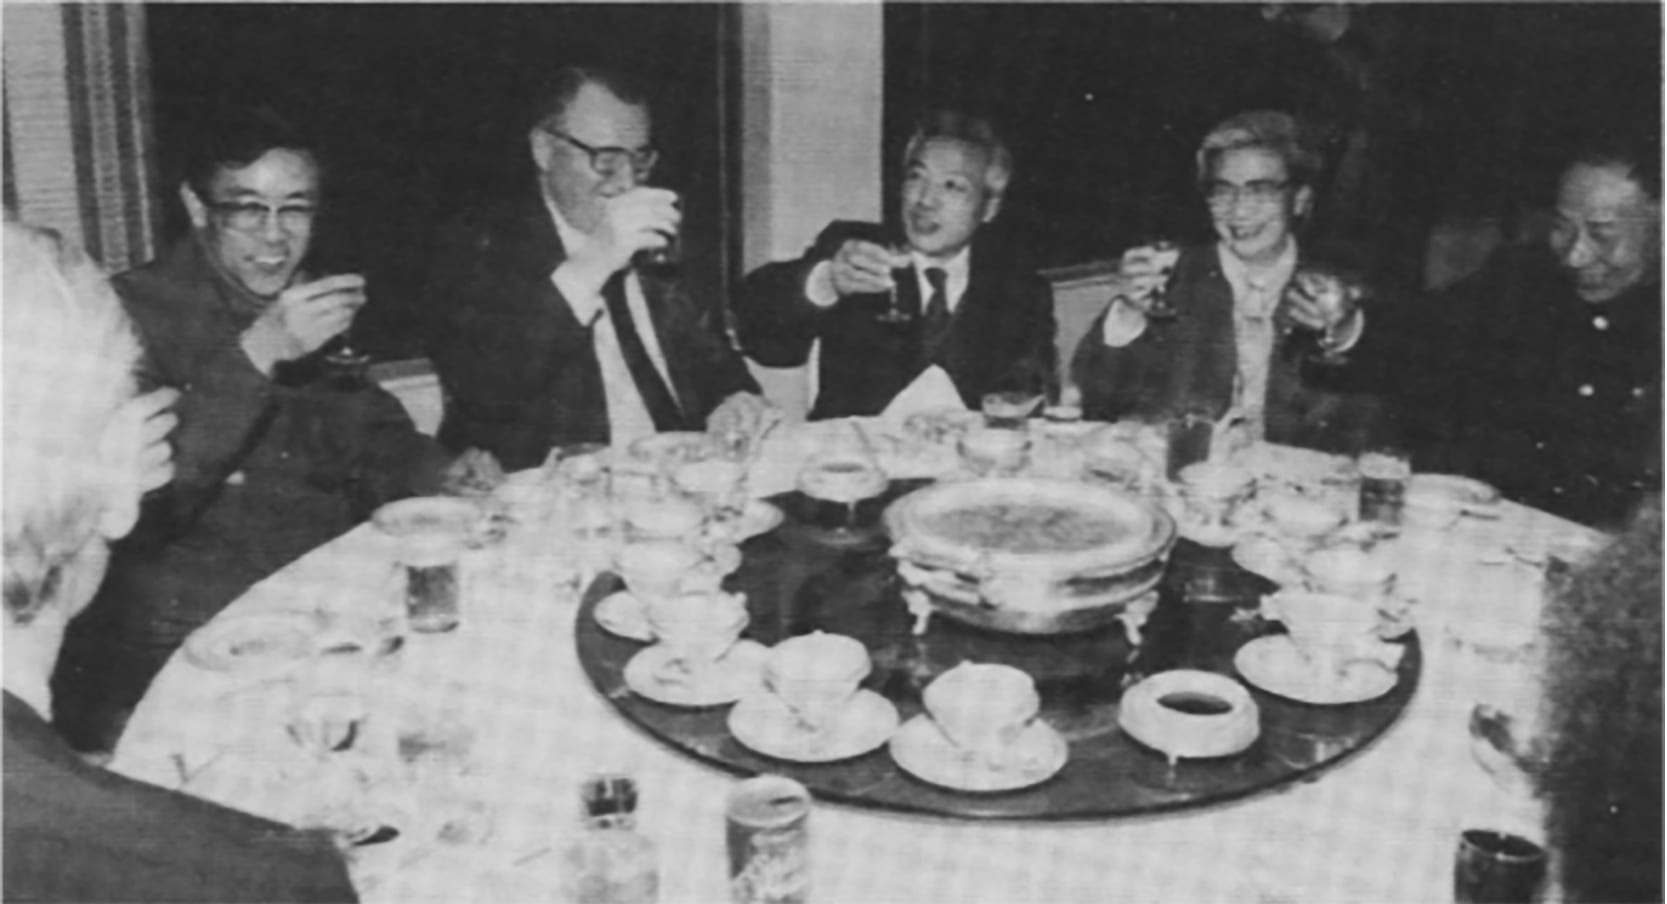 Company leaders, including Connell head Paul O'Leary (second from left), and government dignitaries celebrated Connell's return to Shanghai, China, in 1986.